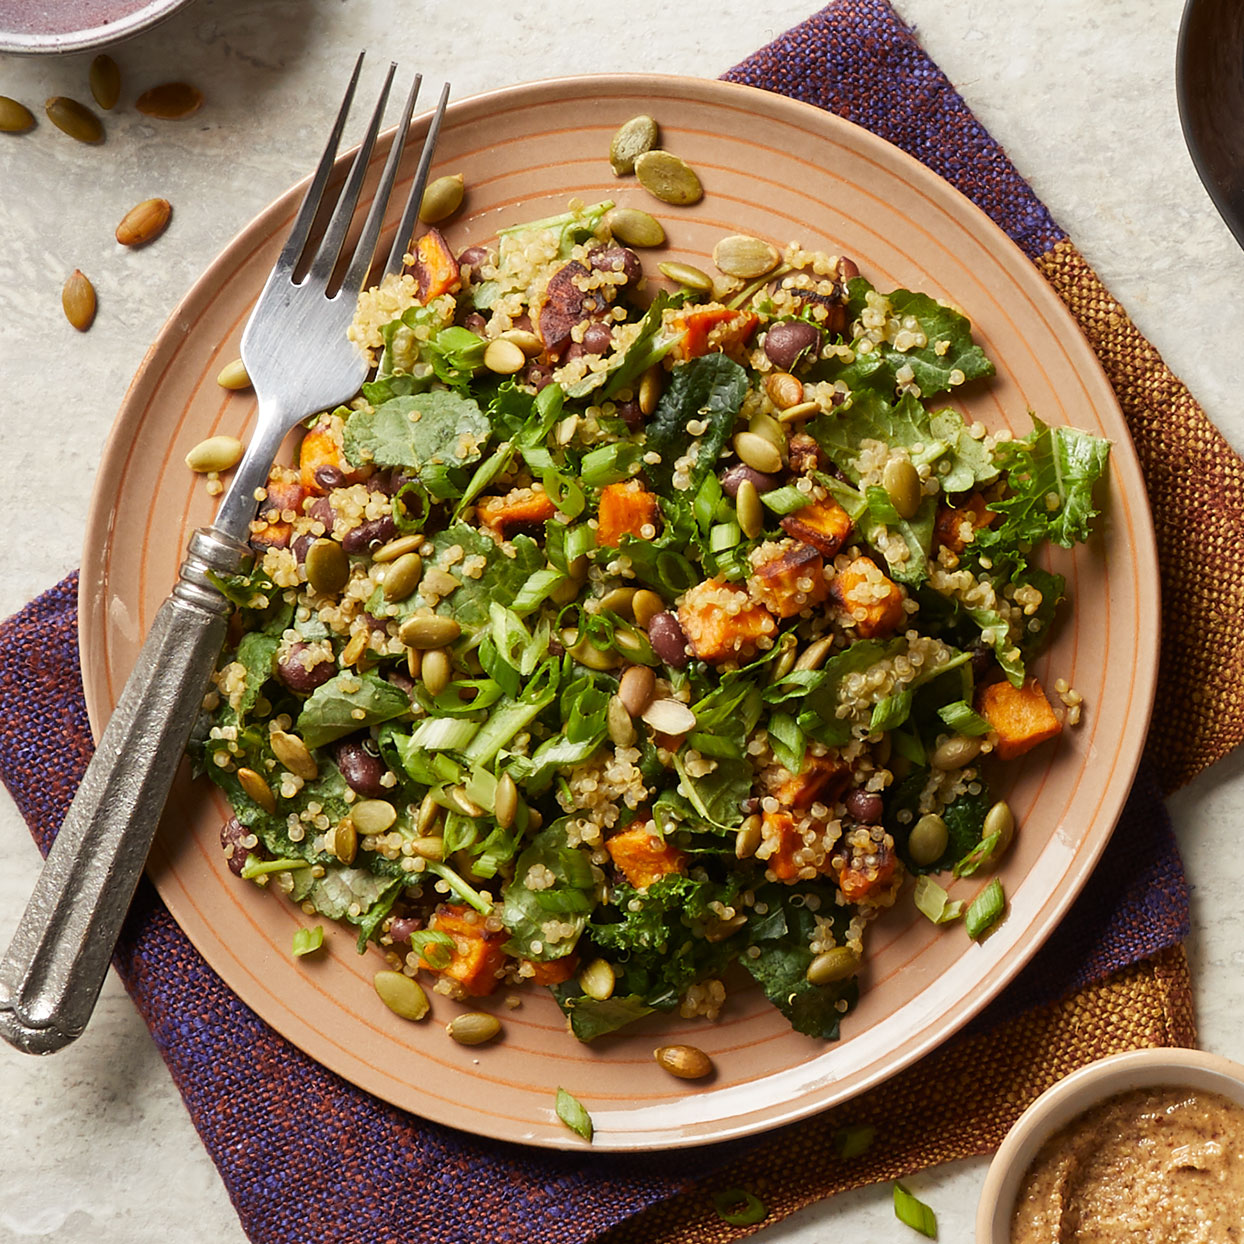 Precooked quinoa helps keep this healthy salad recipe quick and simple. Loaded with black beans, kale, and avocado, this recipe is as filling as it is nutritious. You can also make the sweet potatoes and dressing ahead.